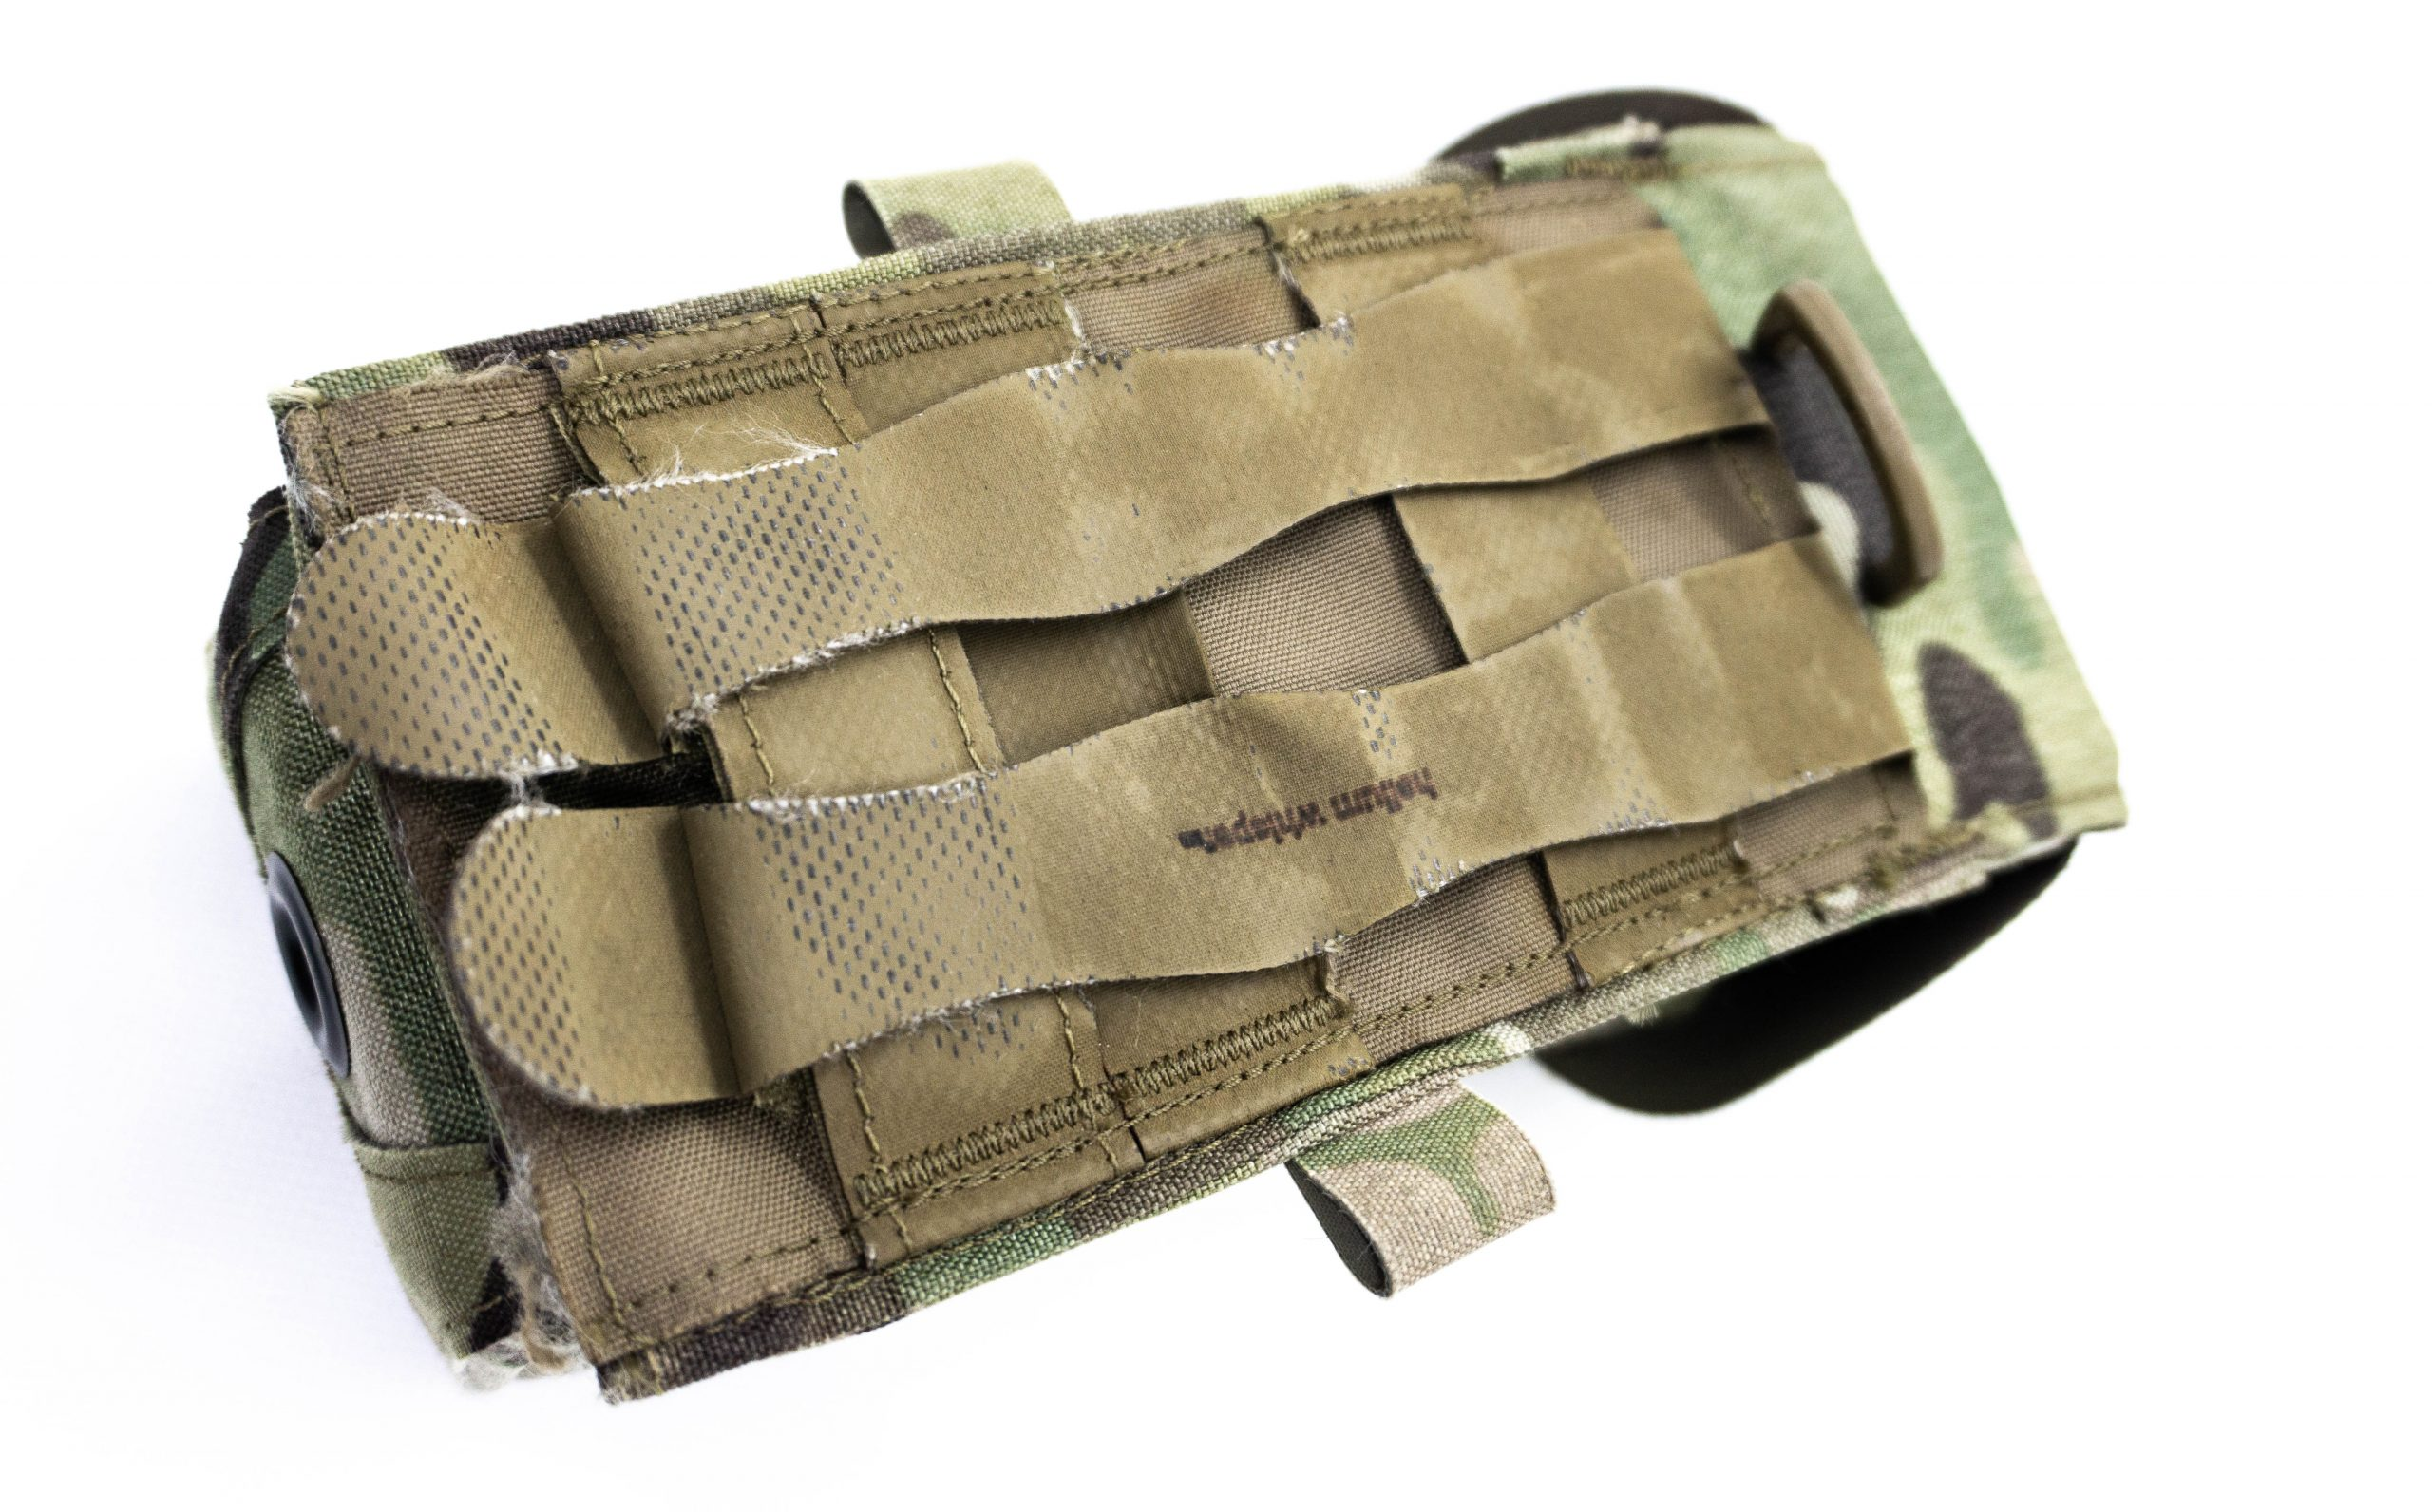 Velocity Systems Jungle mag Pouch .223 by Mayflower RC